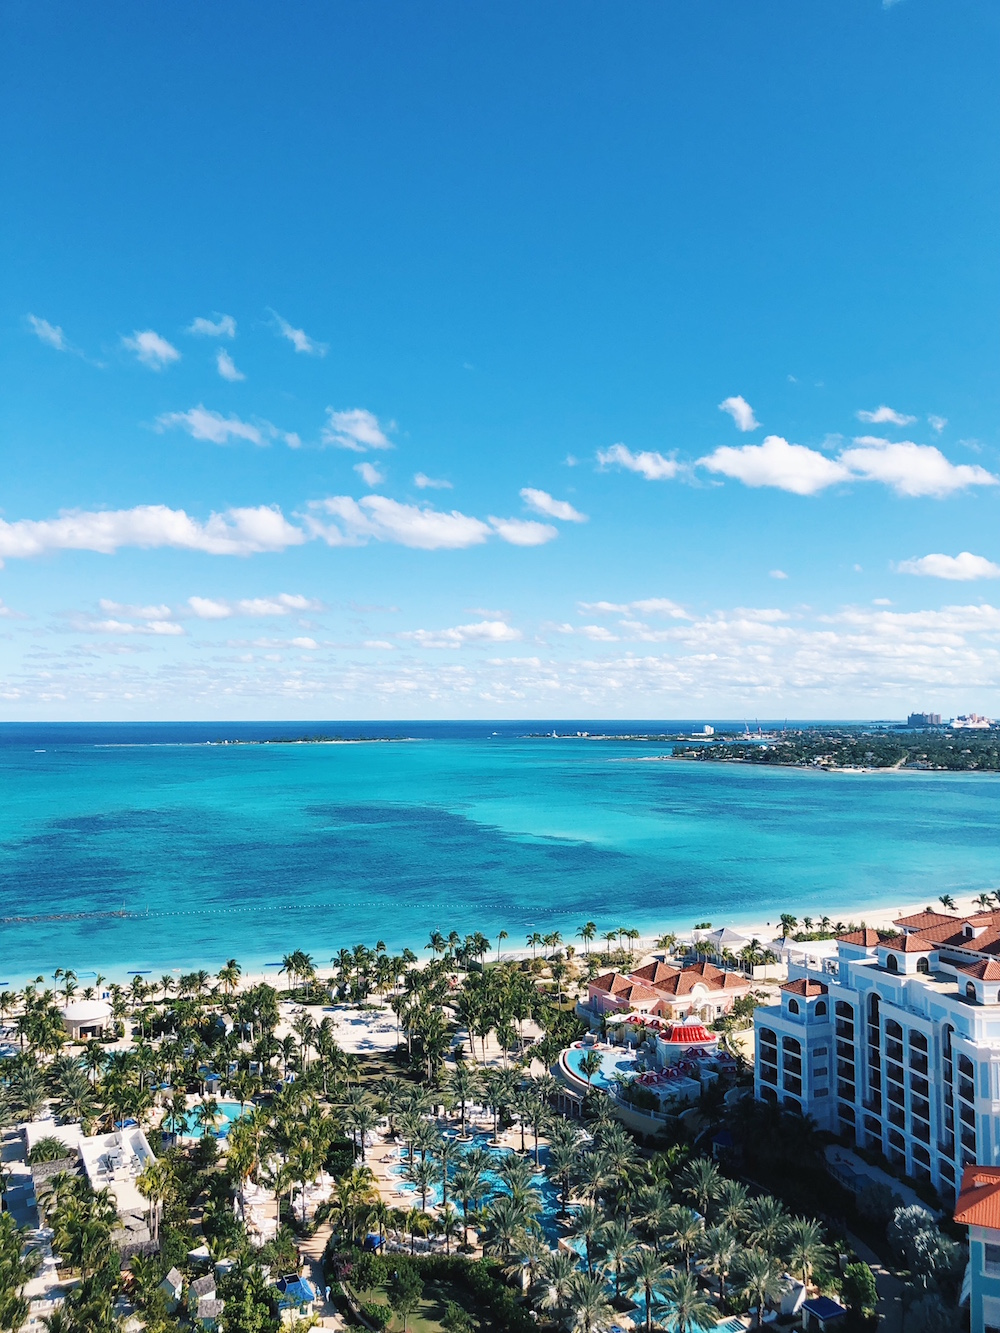 View of water and property grounds from tower at Grand Hyatt Baha Mar Bahamas